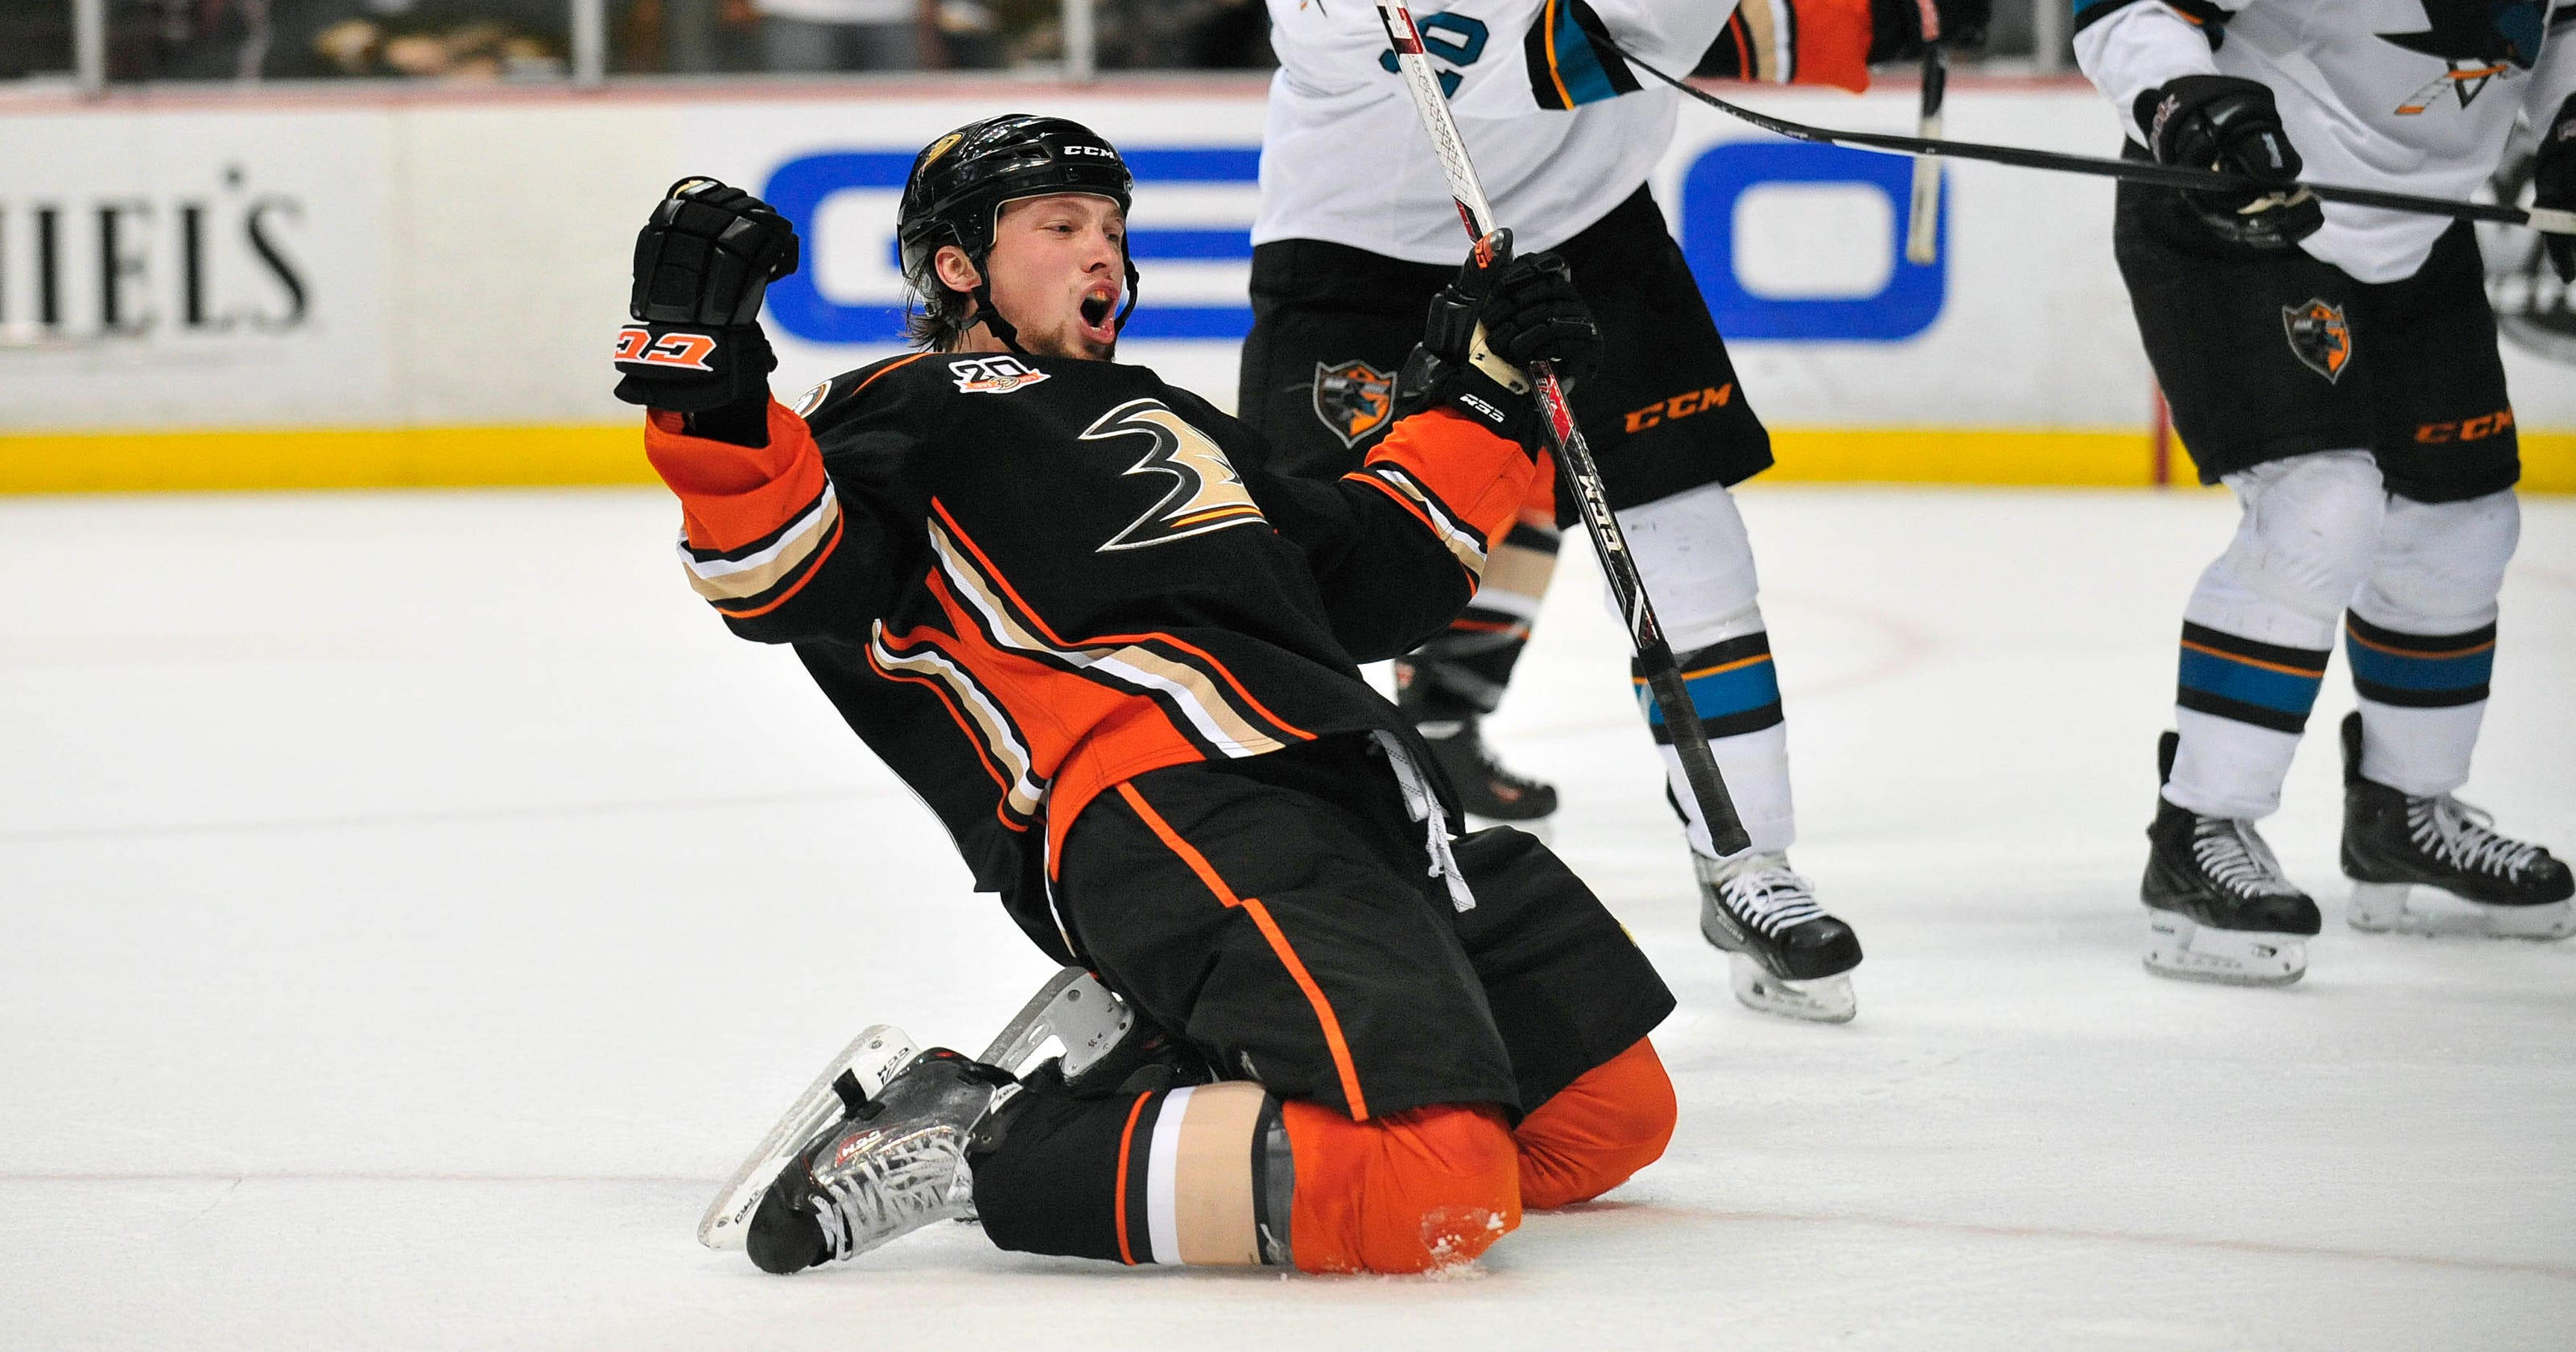 ffac3cf93 Ducks rout Sharks for 11th win in 12 games